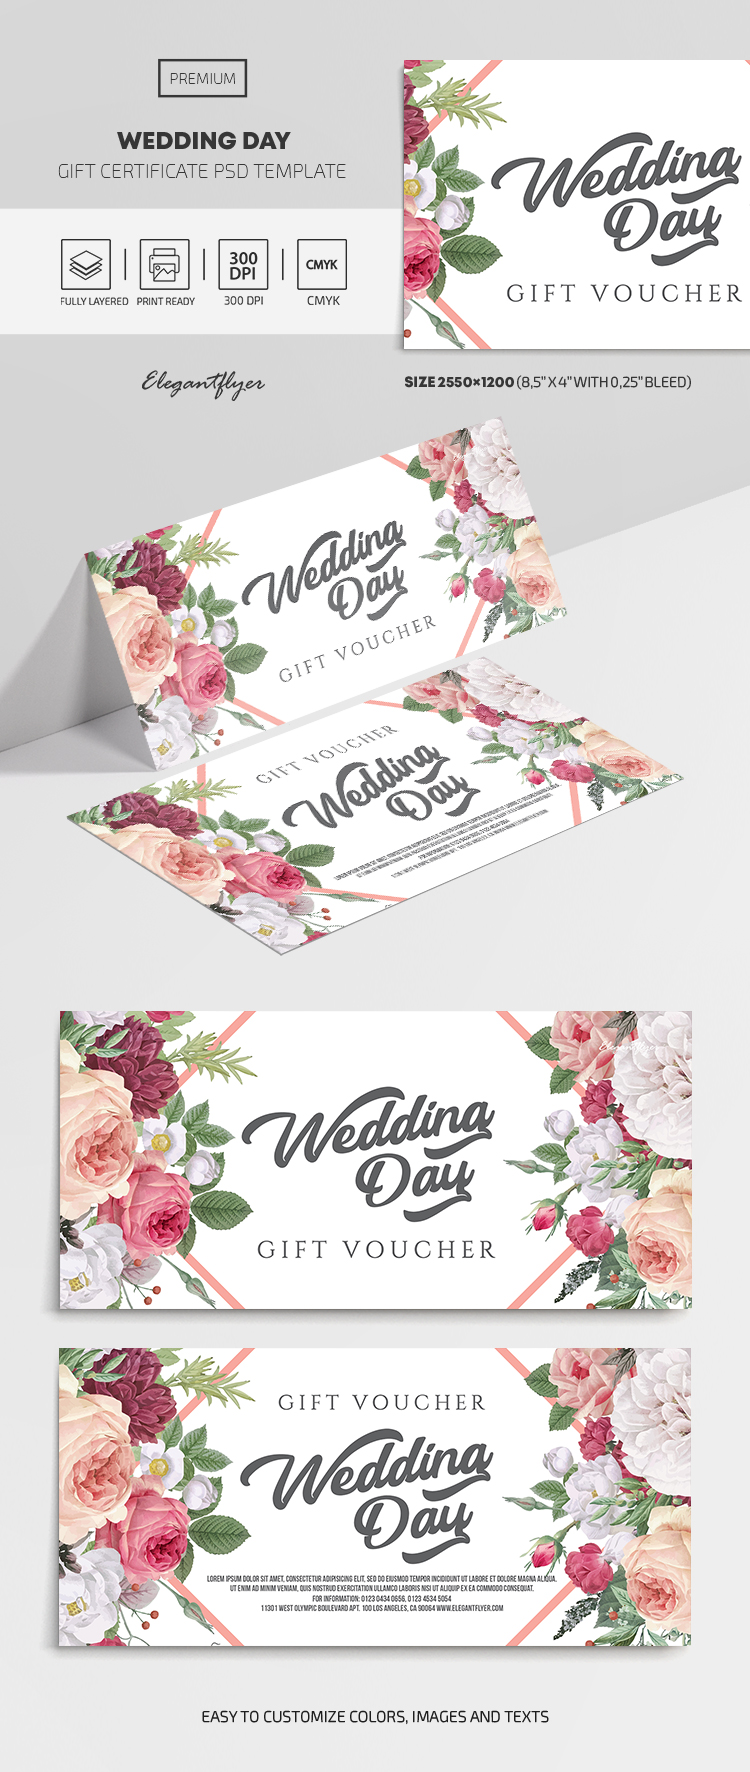 Wedding Day – Premium Gift Certificate Template in PSD